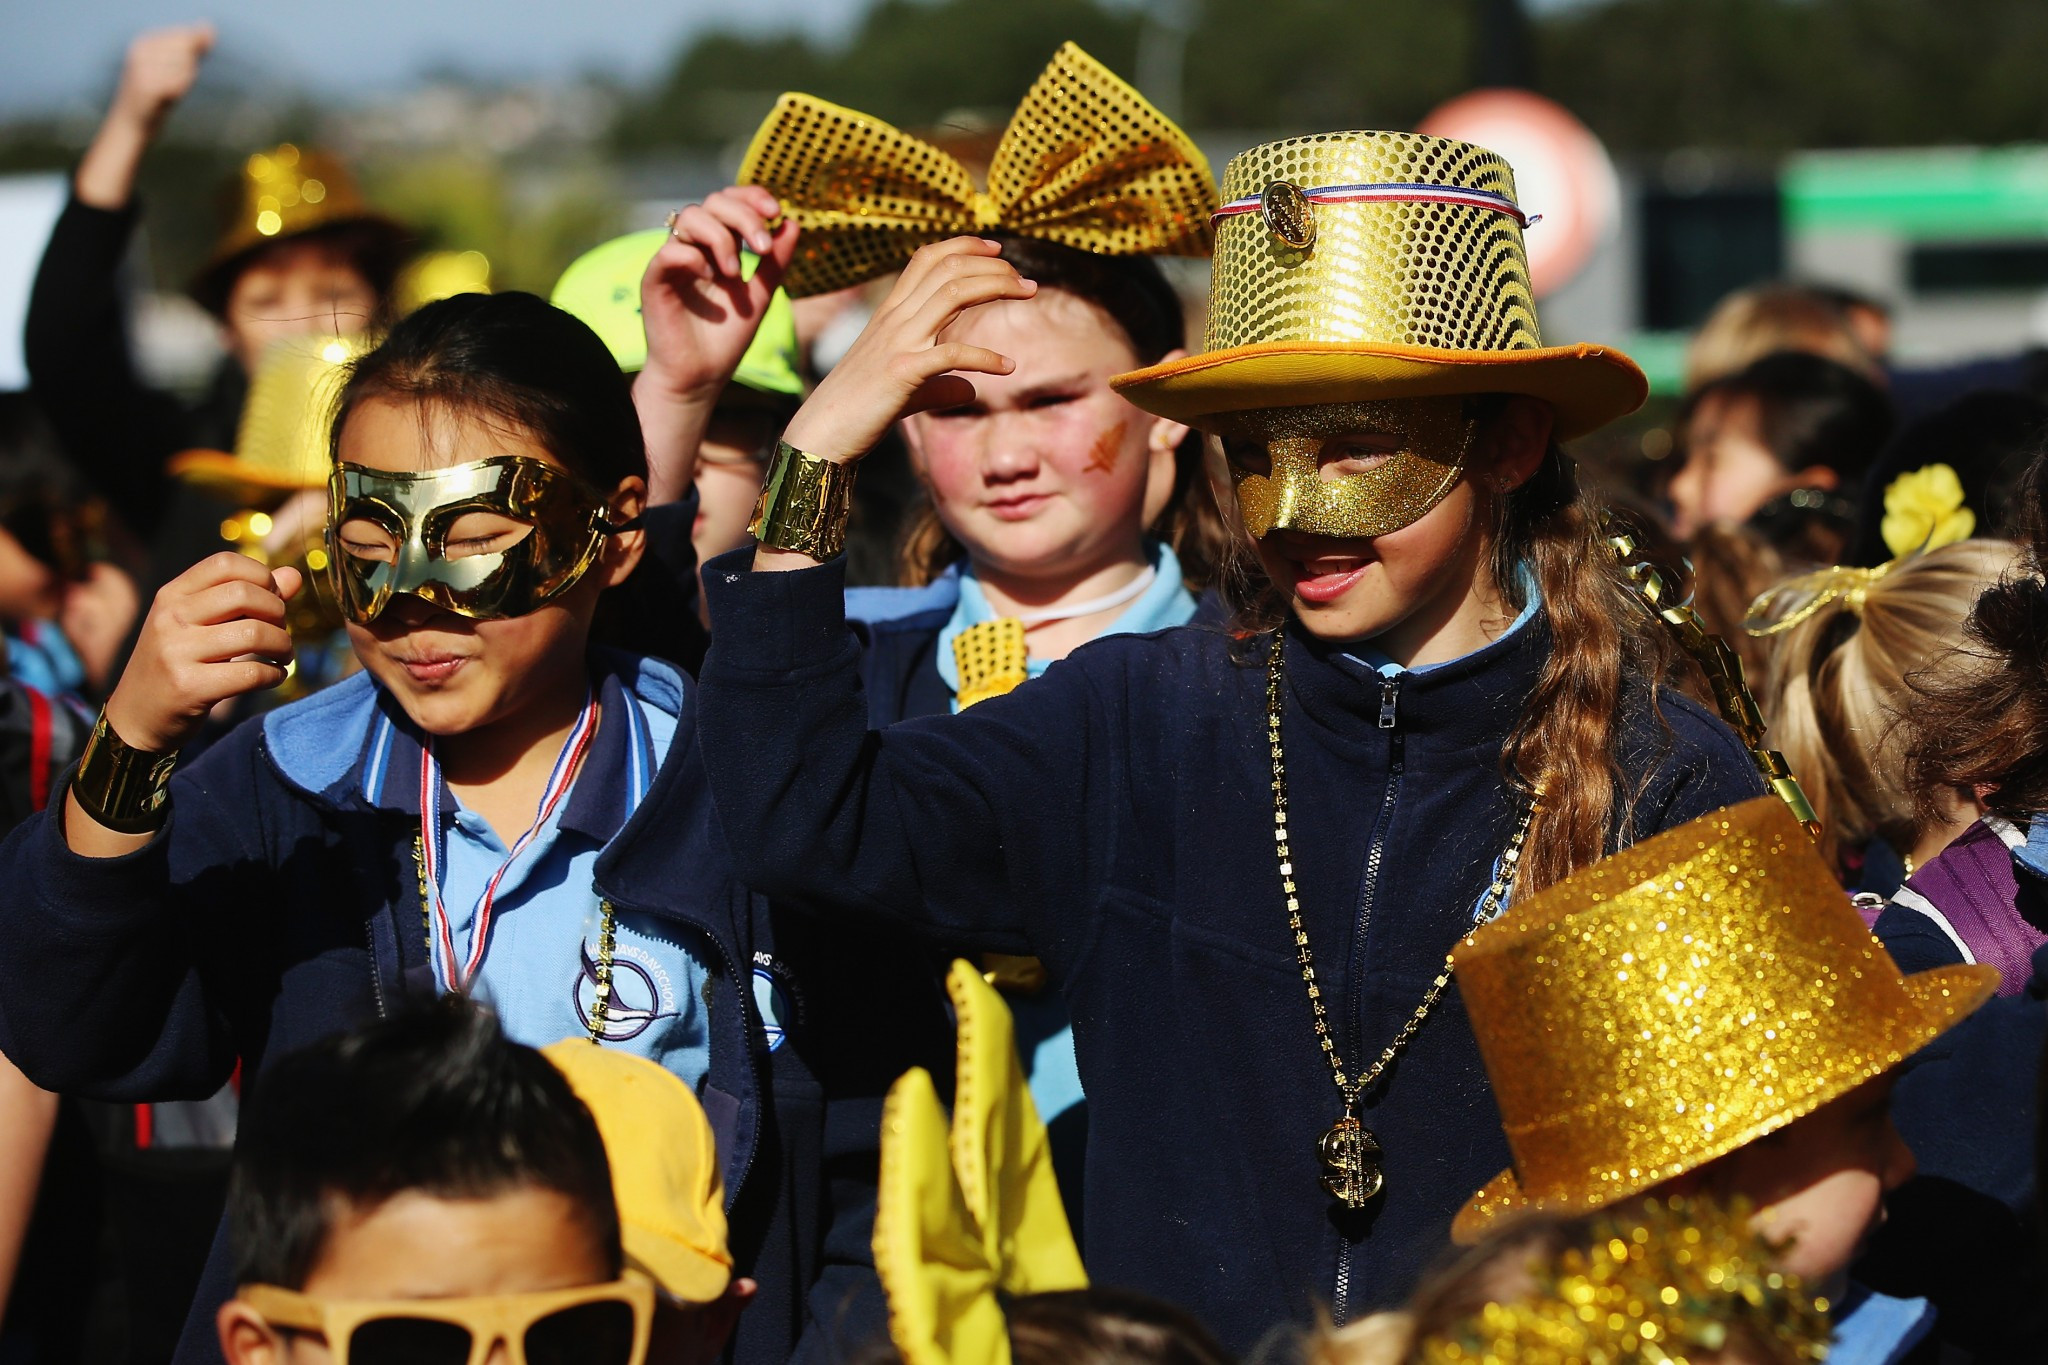 """People dressed up for the """"Spirit of Gold"""" mufti day to help raise funds to send New Zealand athletes to Pyeongchang 2018 ©PNZ"""